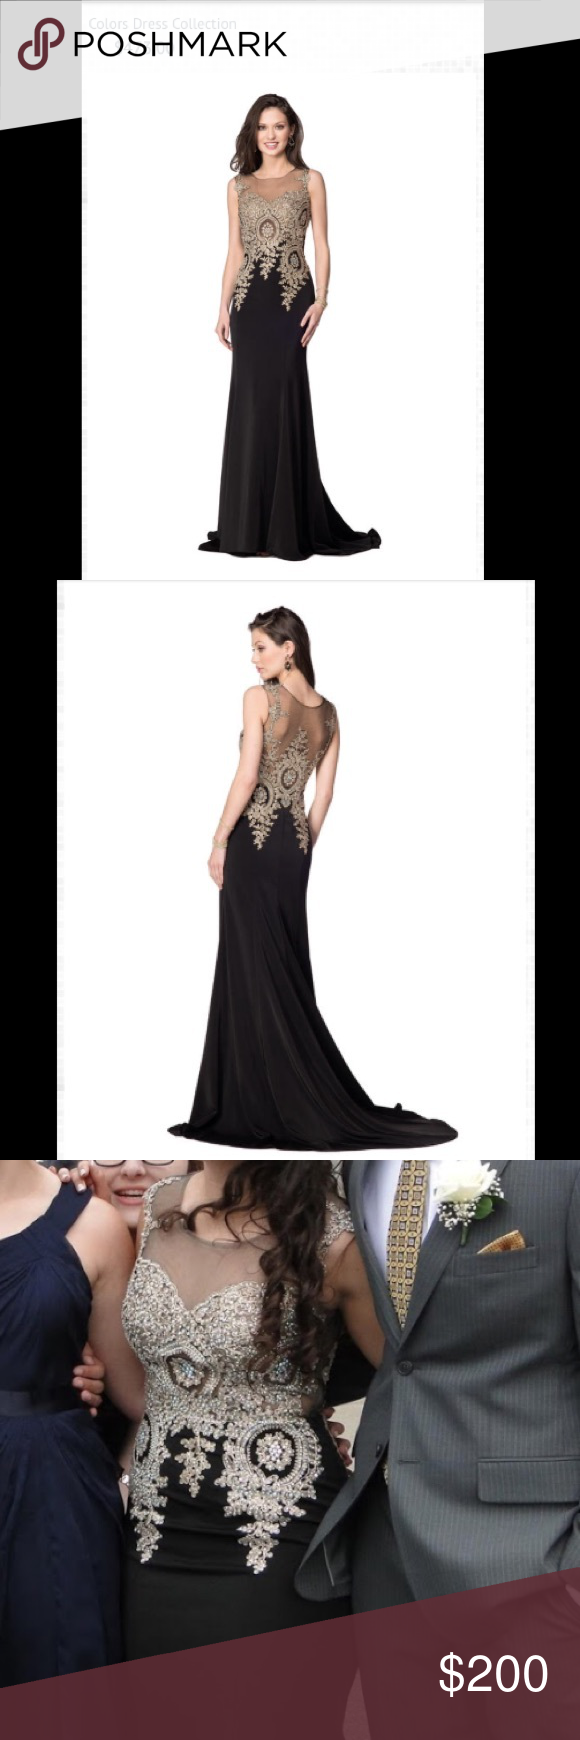 Colors prom dress black and gold worn once it was hemmed to fit me